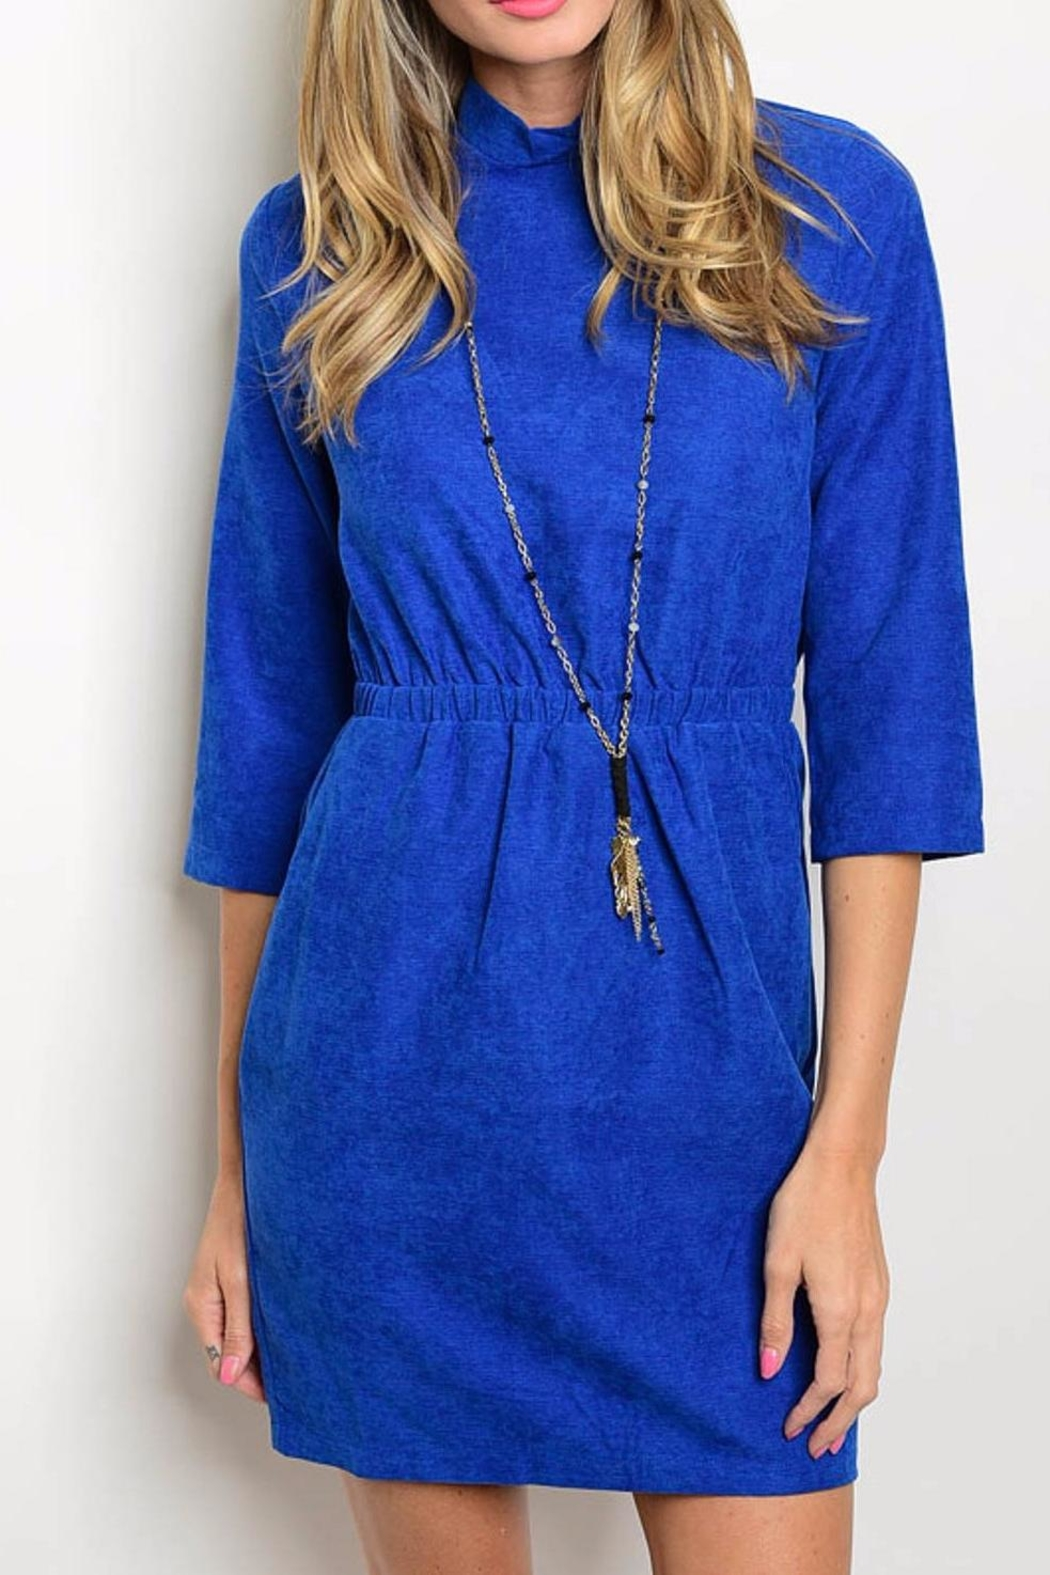 Michele Blue Suede Dress - Main Image